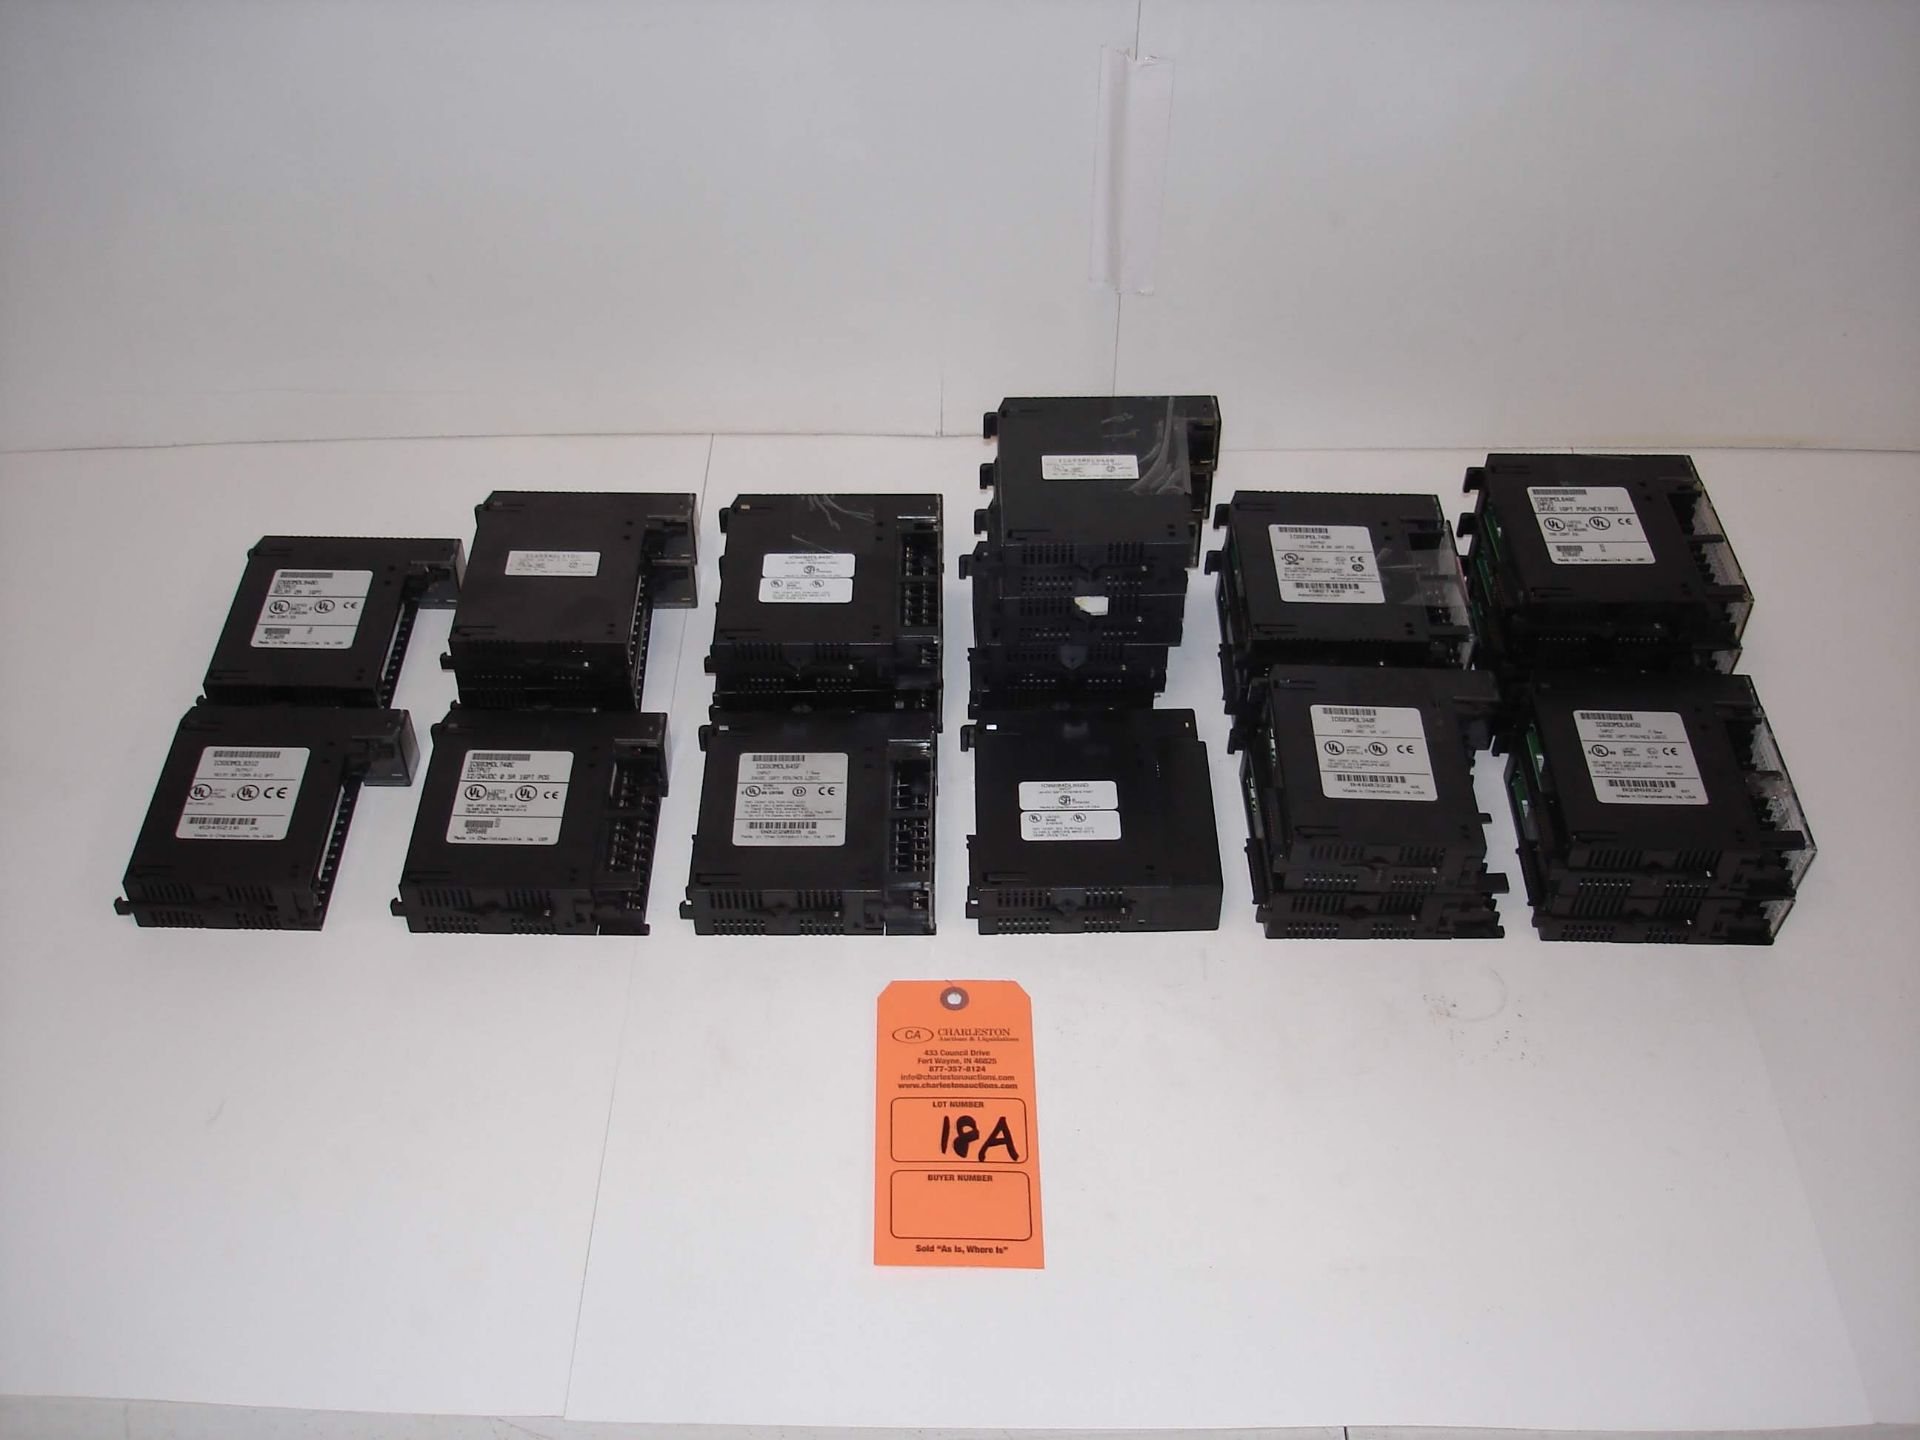 Lot 18A - (20+) MISC GE FANUC INPUT/OUTPUT MODULES: GENERAL ELECTRIC IC693MDL645C INPUT MODULE AND ALL OTHER